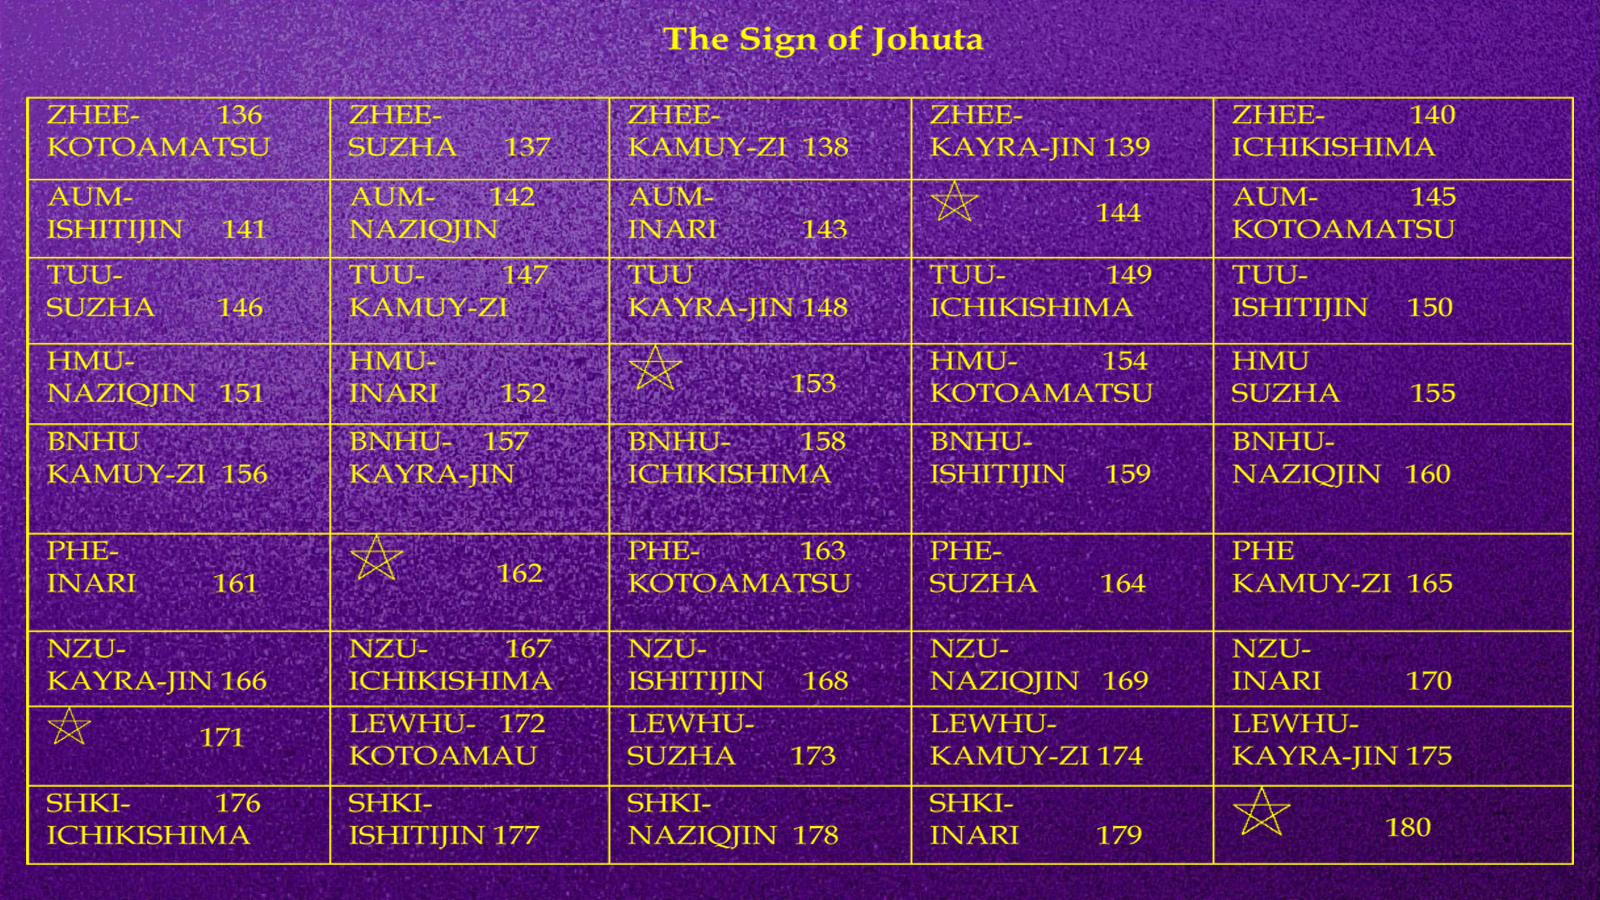 The Sign of Johuta Year 18,003: Begins August 1st 2016